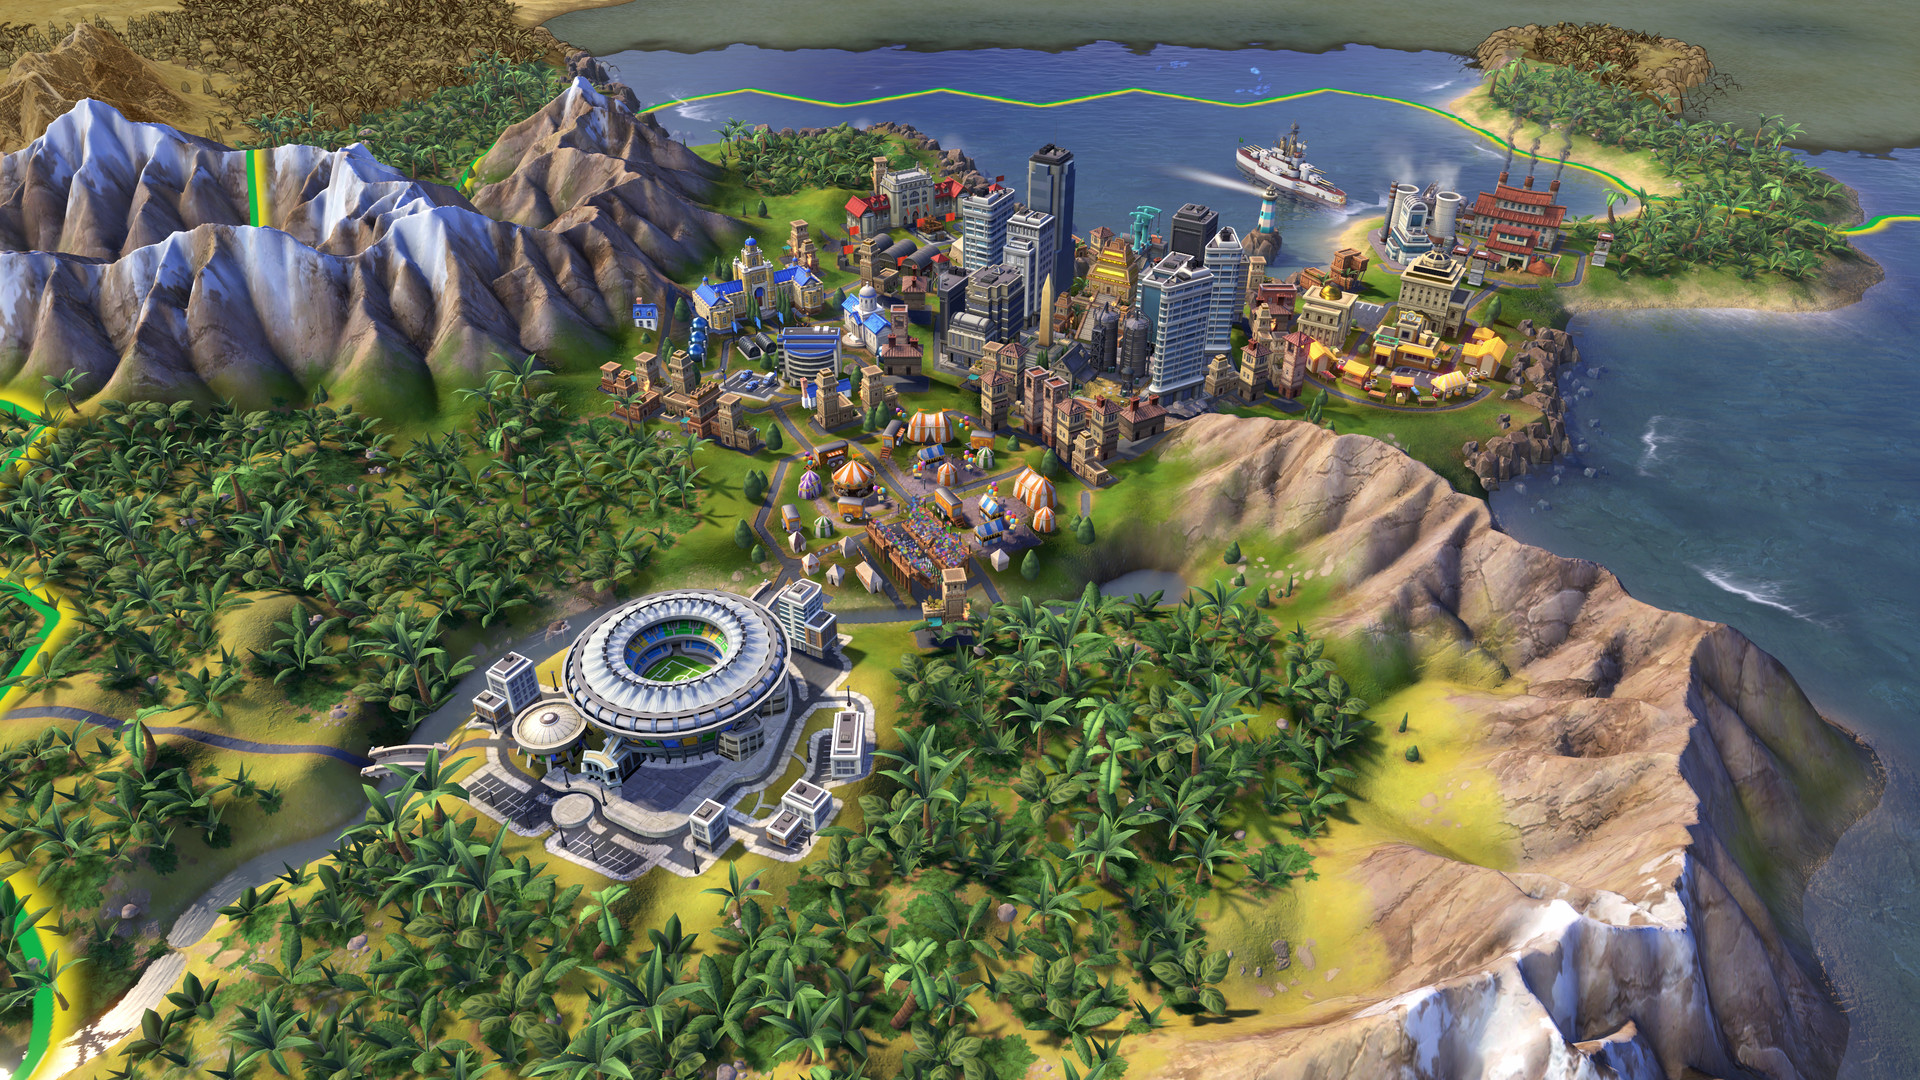 Civilization VI, which retails for 60 bucks, is free on the Epic Games Store screenshot